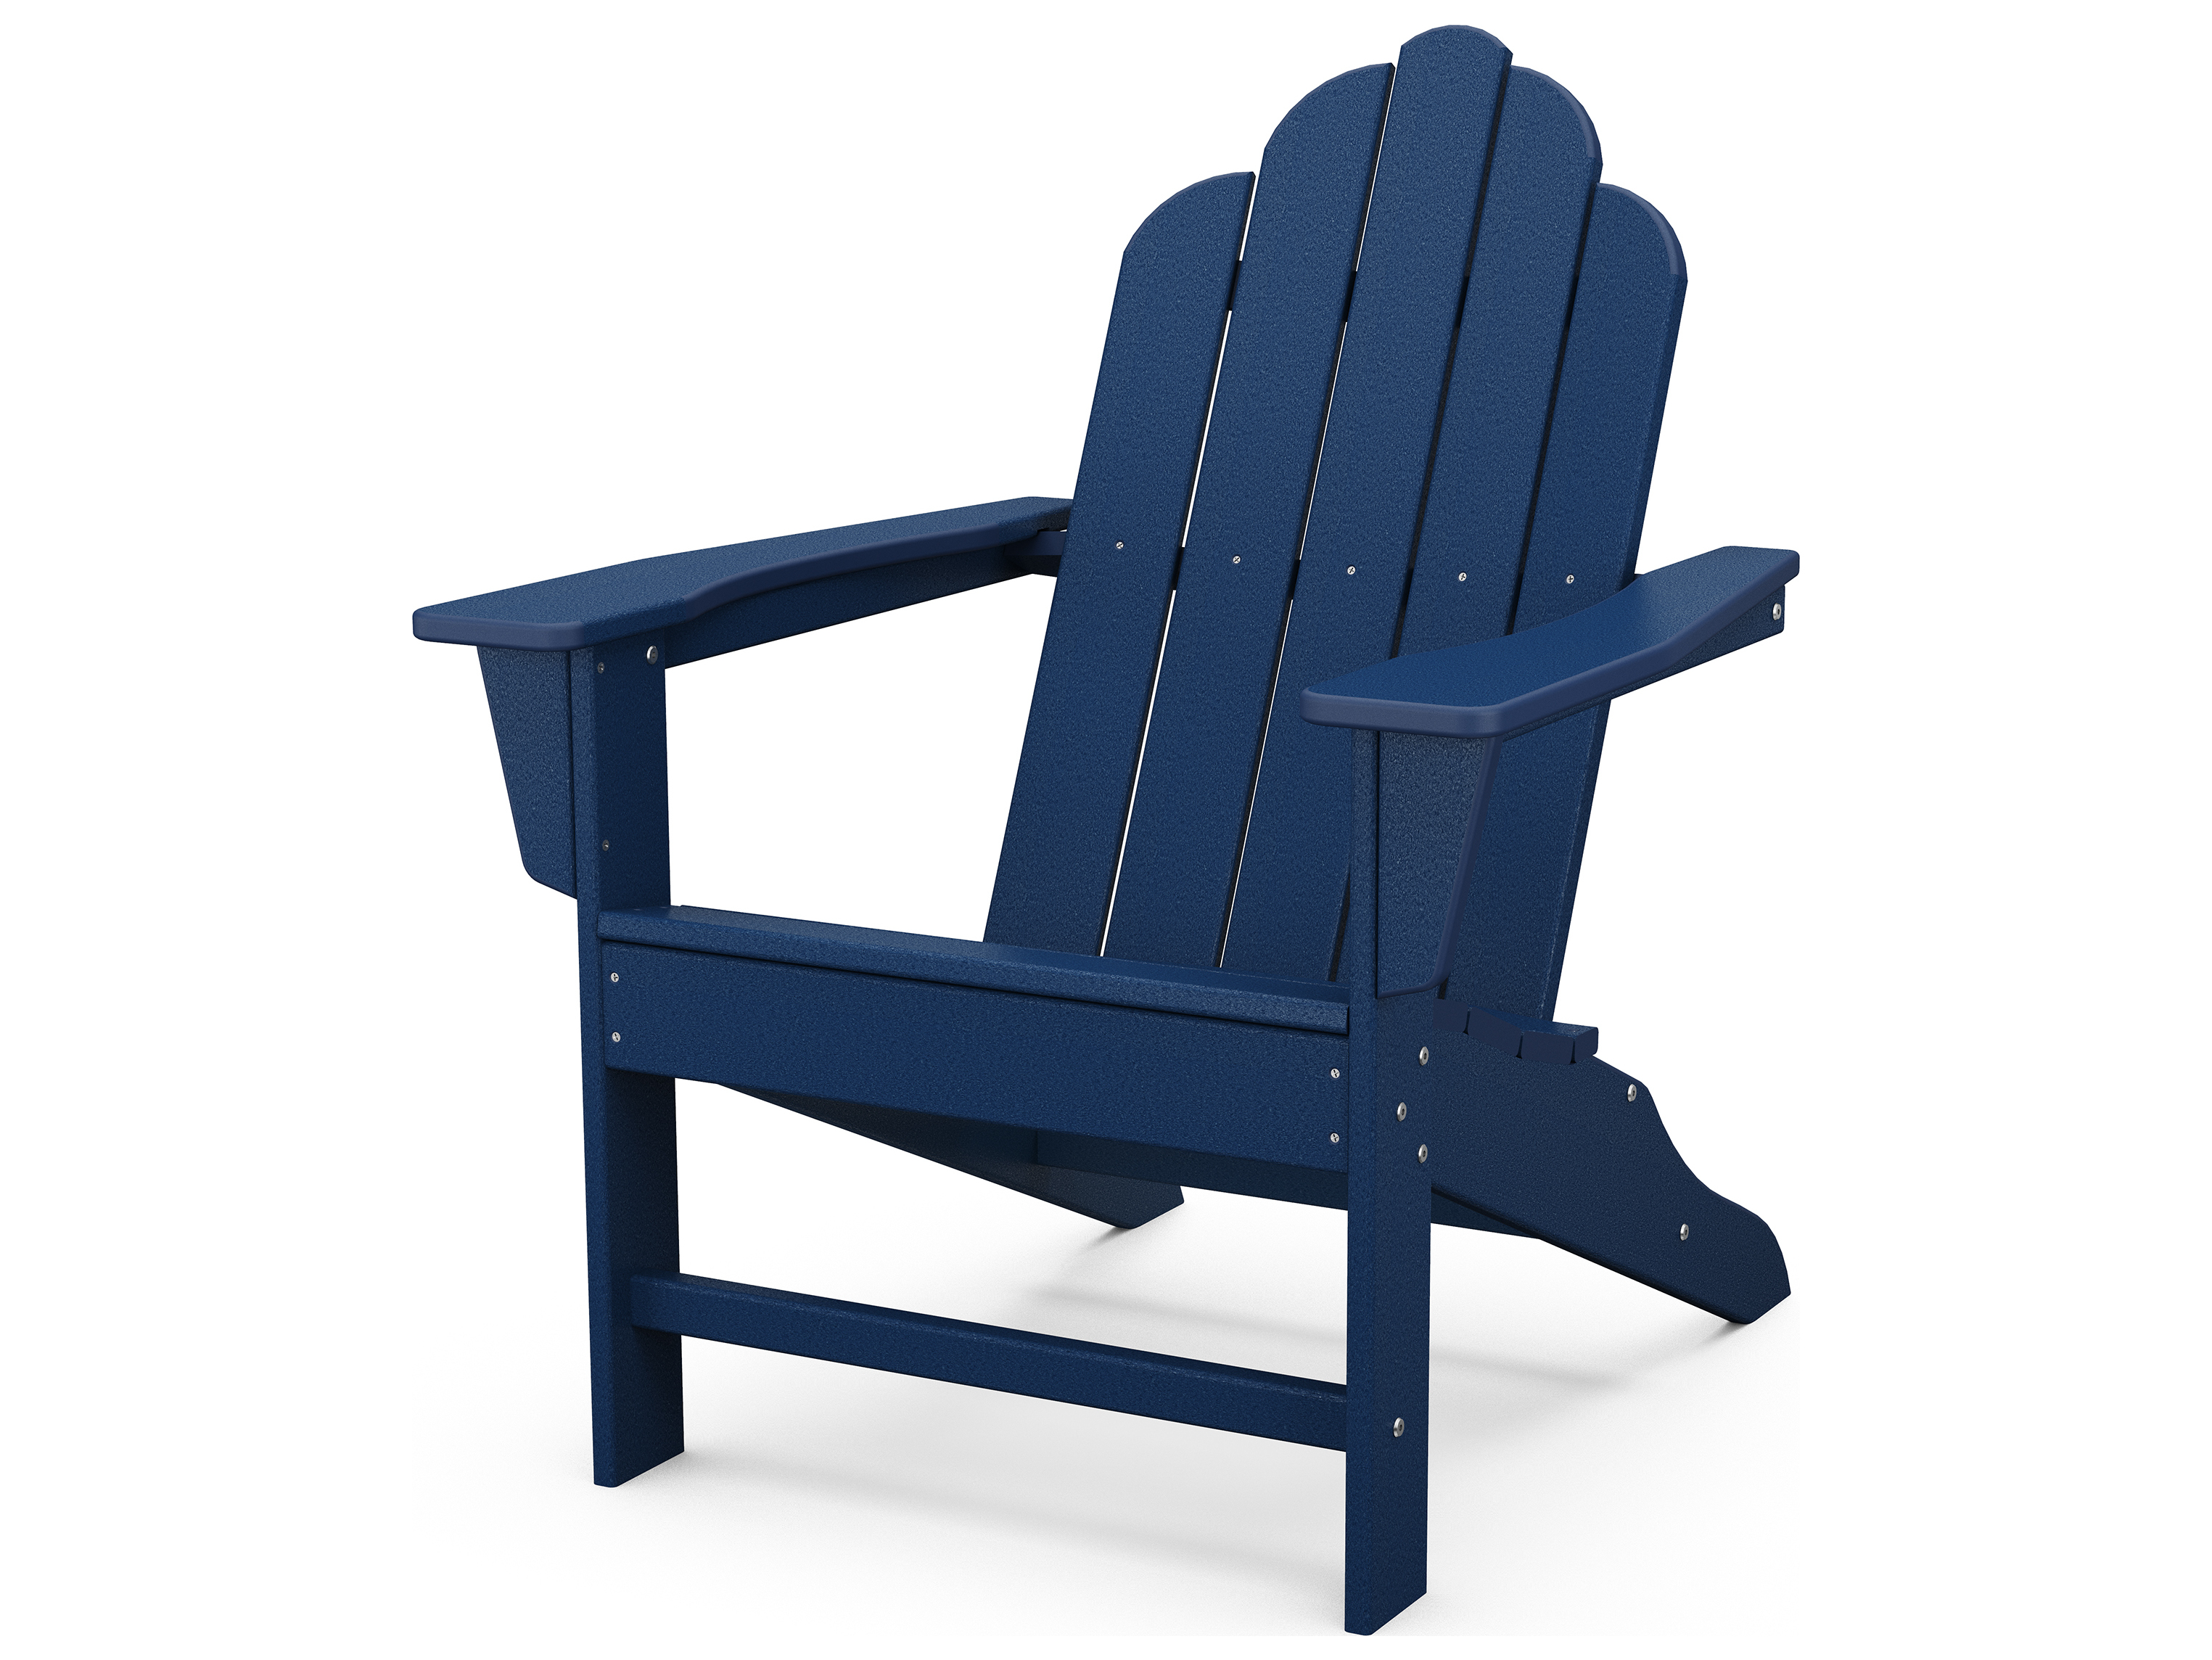 Polywood Long Island Recycled Plastic Adirondack Chair Eca15